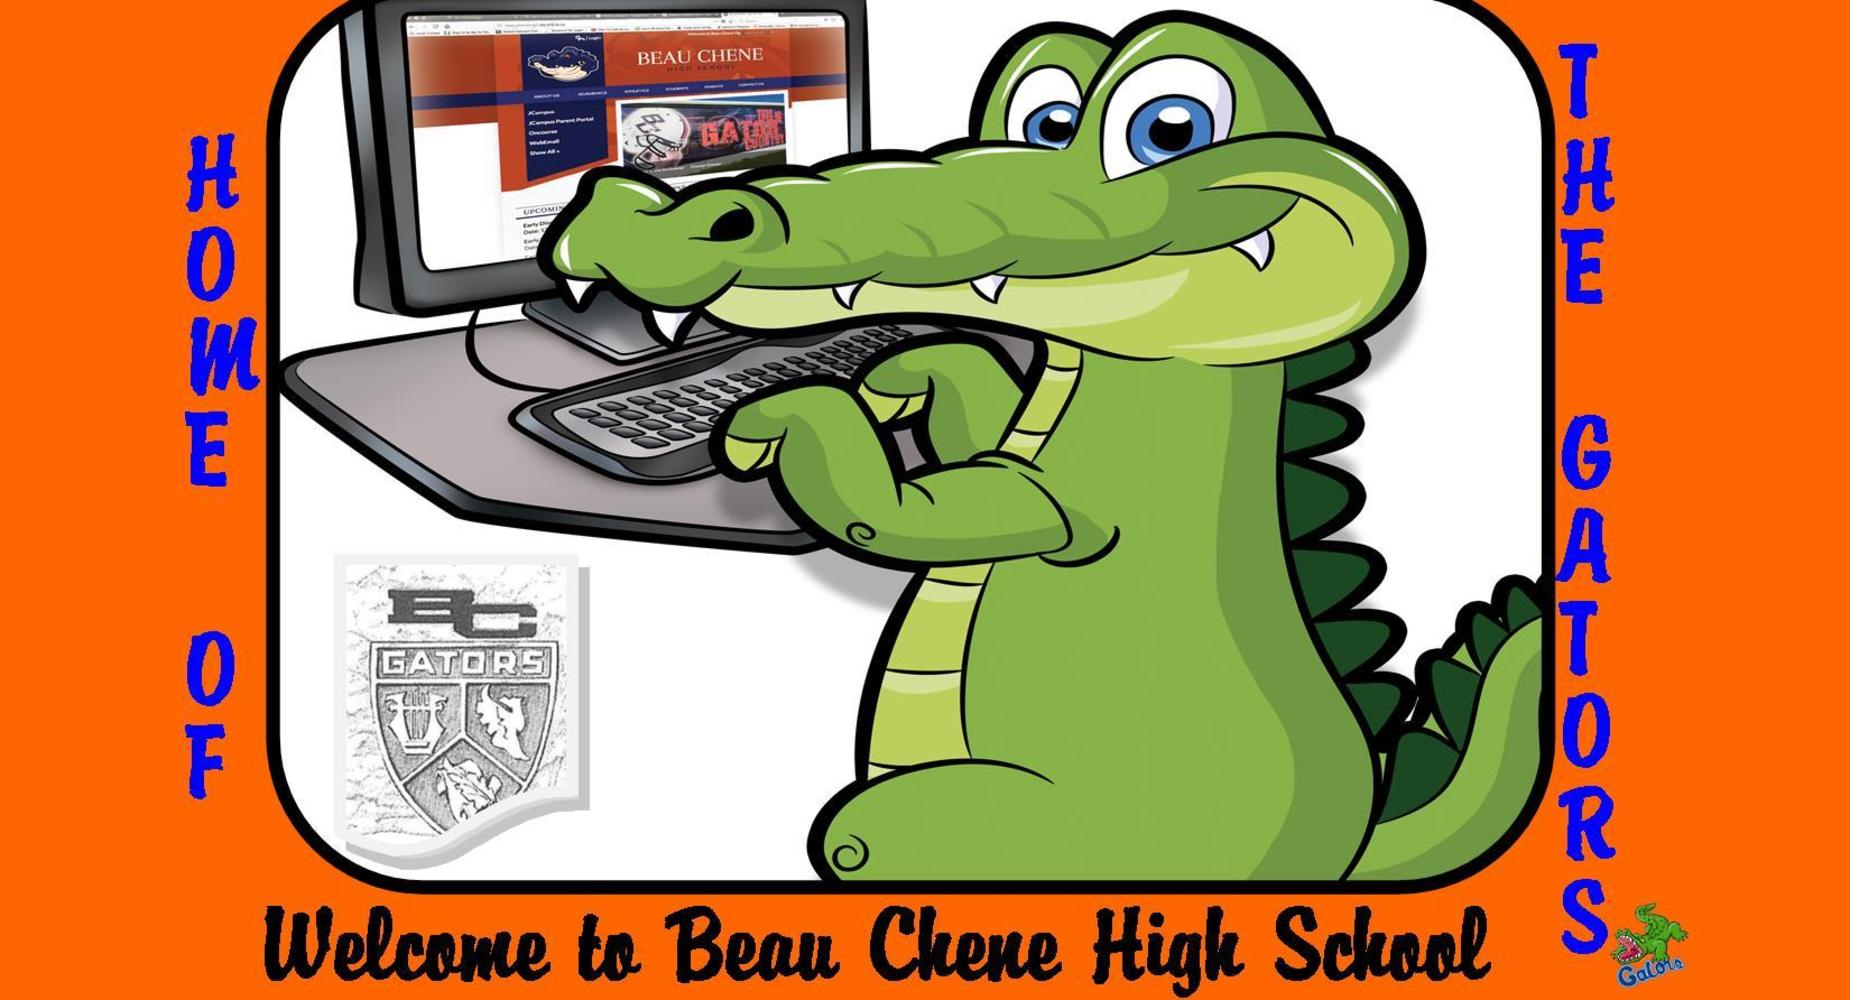 Welcome to Beau Chene High School welcome page